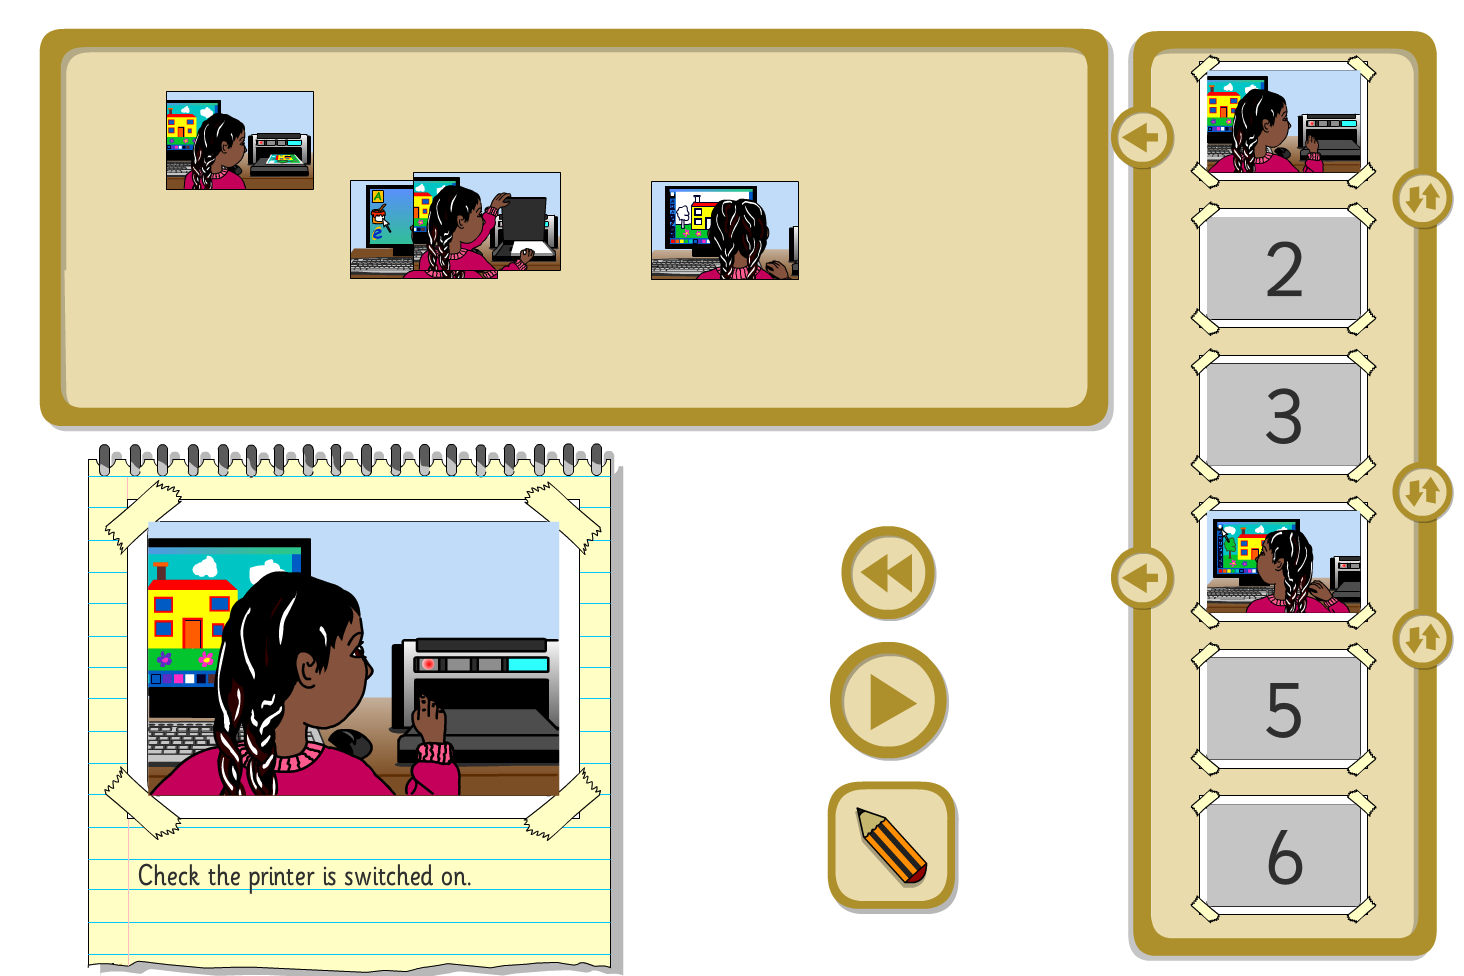 Interactive Sequencer - Making a Picture on the Computer - KS1 Literacy